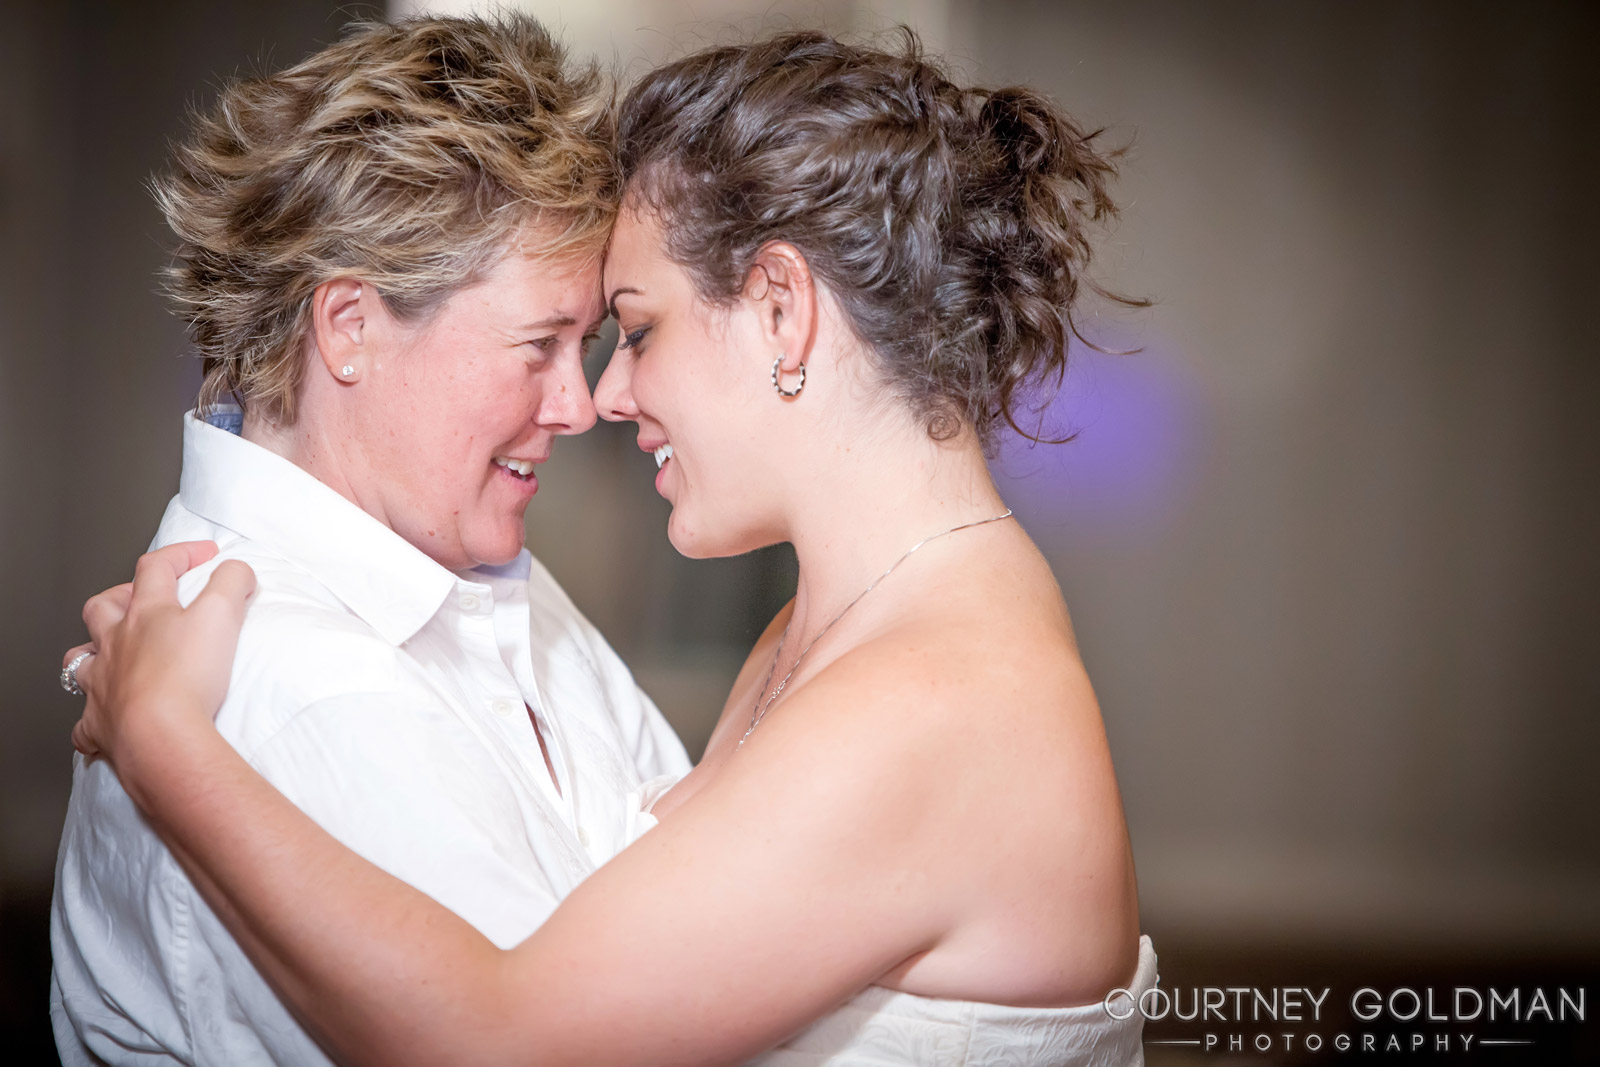 Atlanta-Wedding-Photography-by-Courtney-Goldman-59.jpg